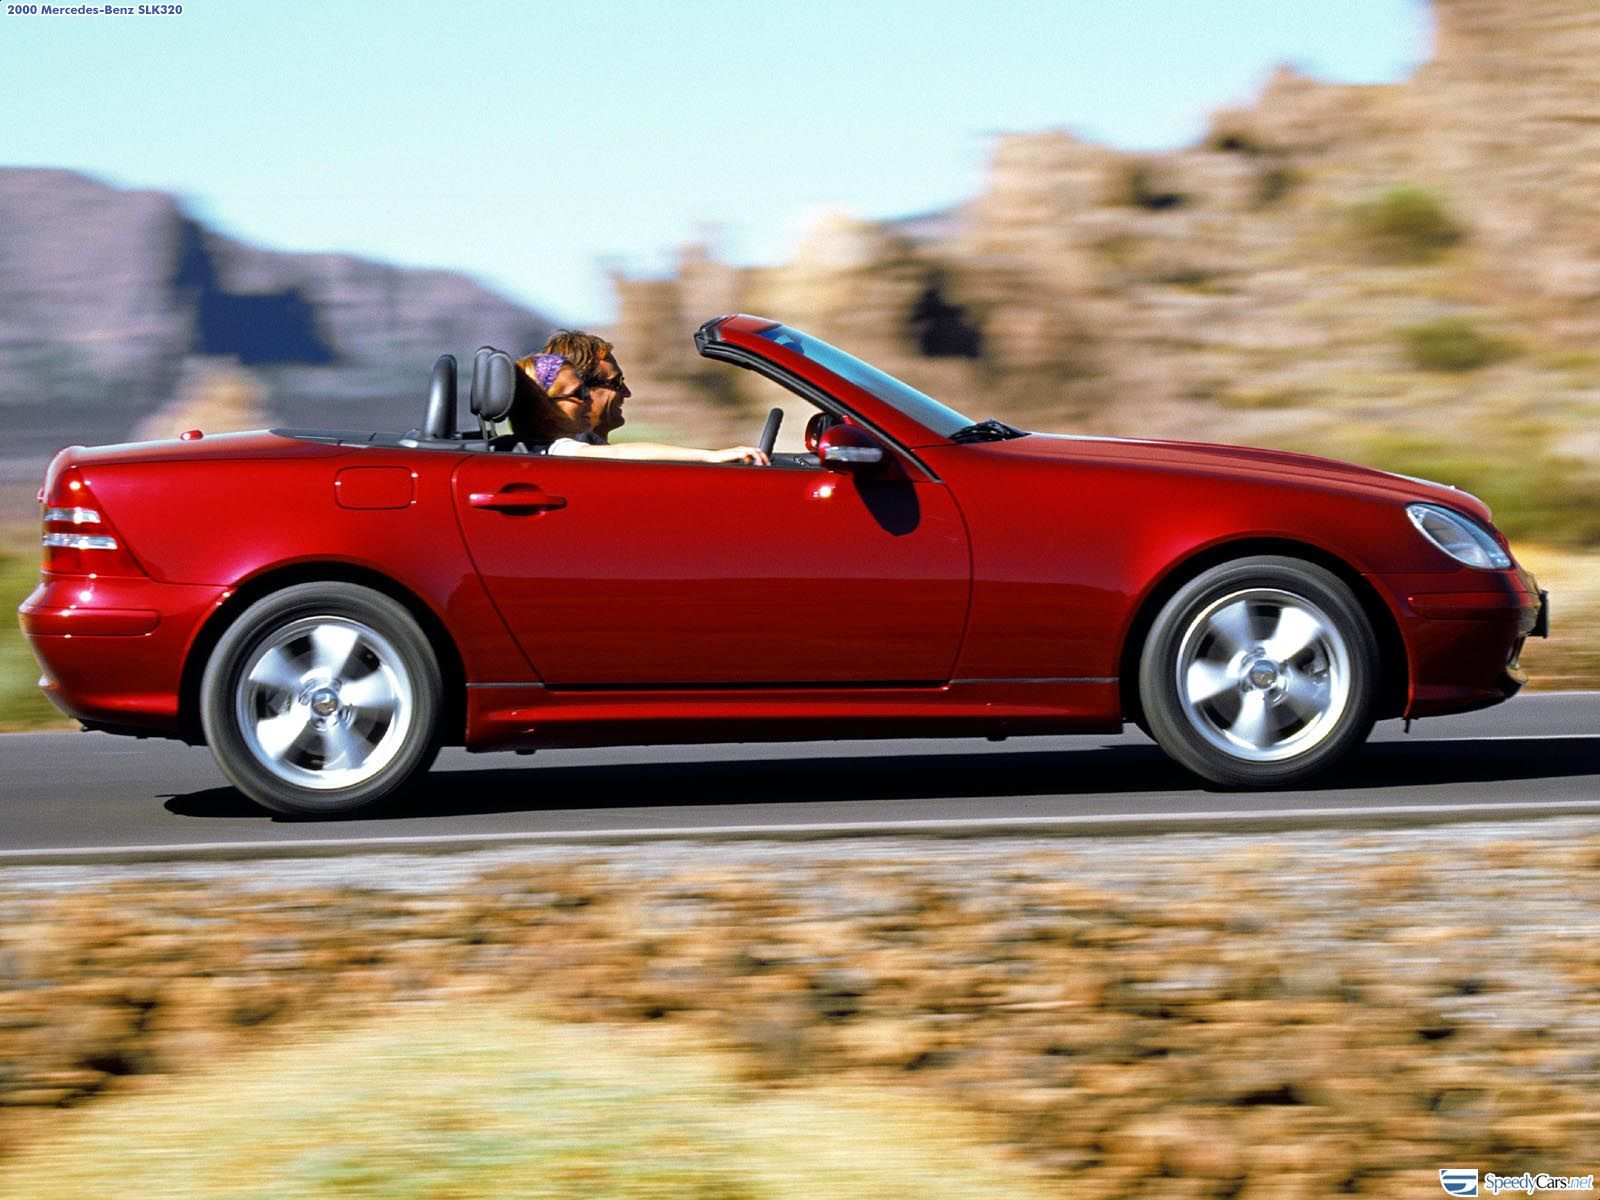 Mercedes-Benz SLK320 photo 7256